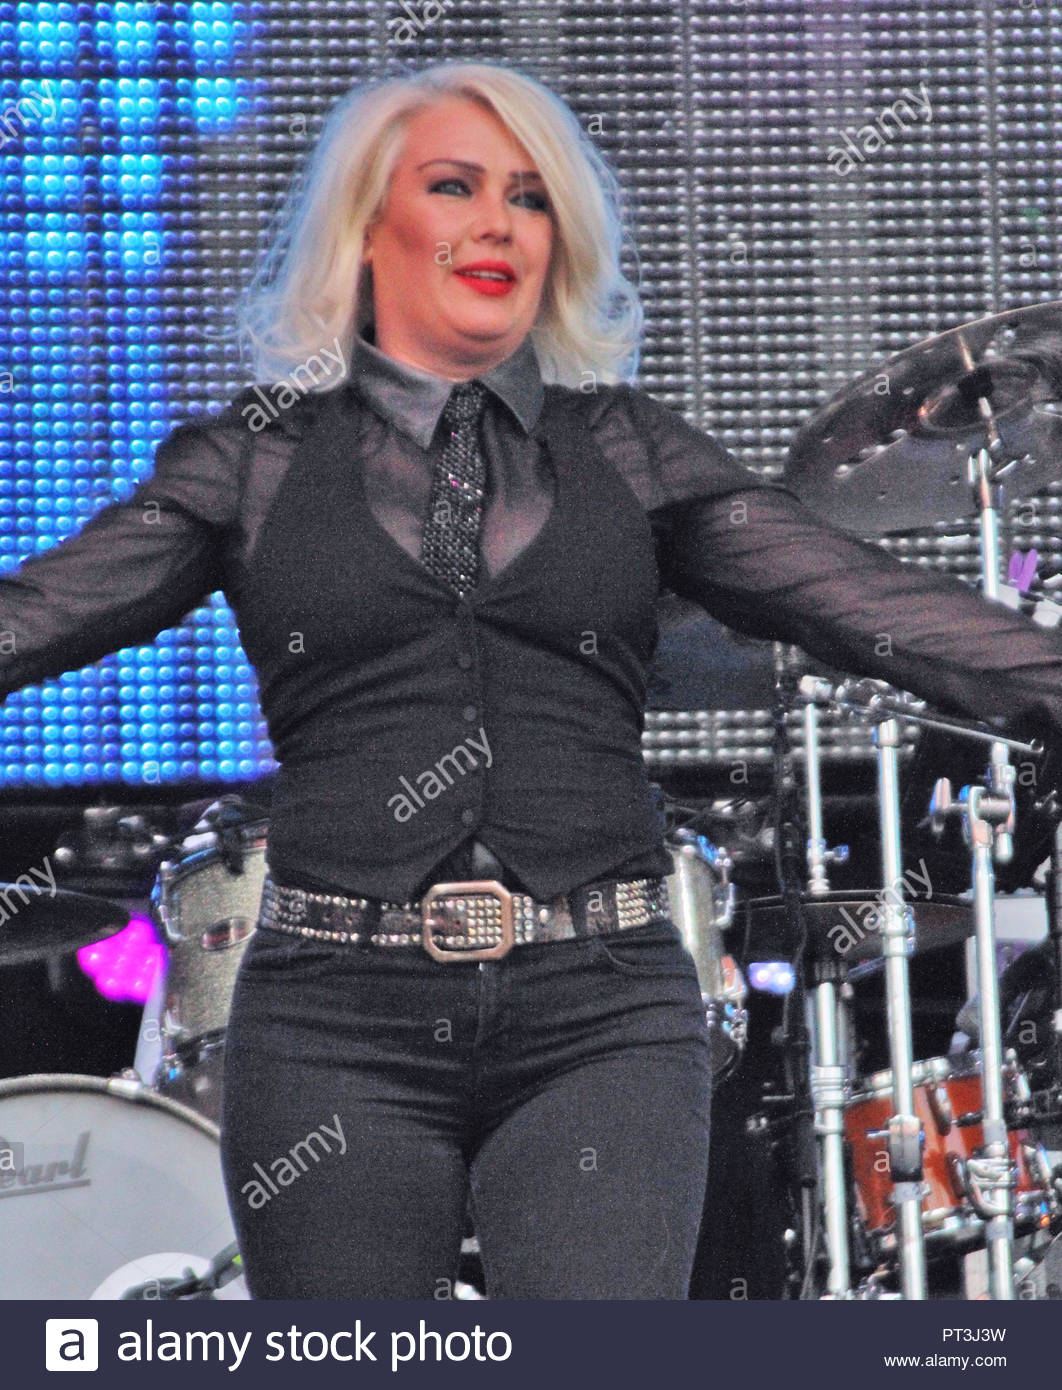 kim wilde at rewind north at capesthorne hall, siddington, cheshire on  saturday 08 August